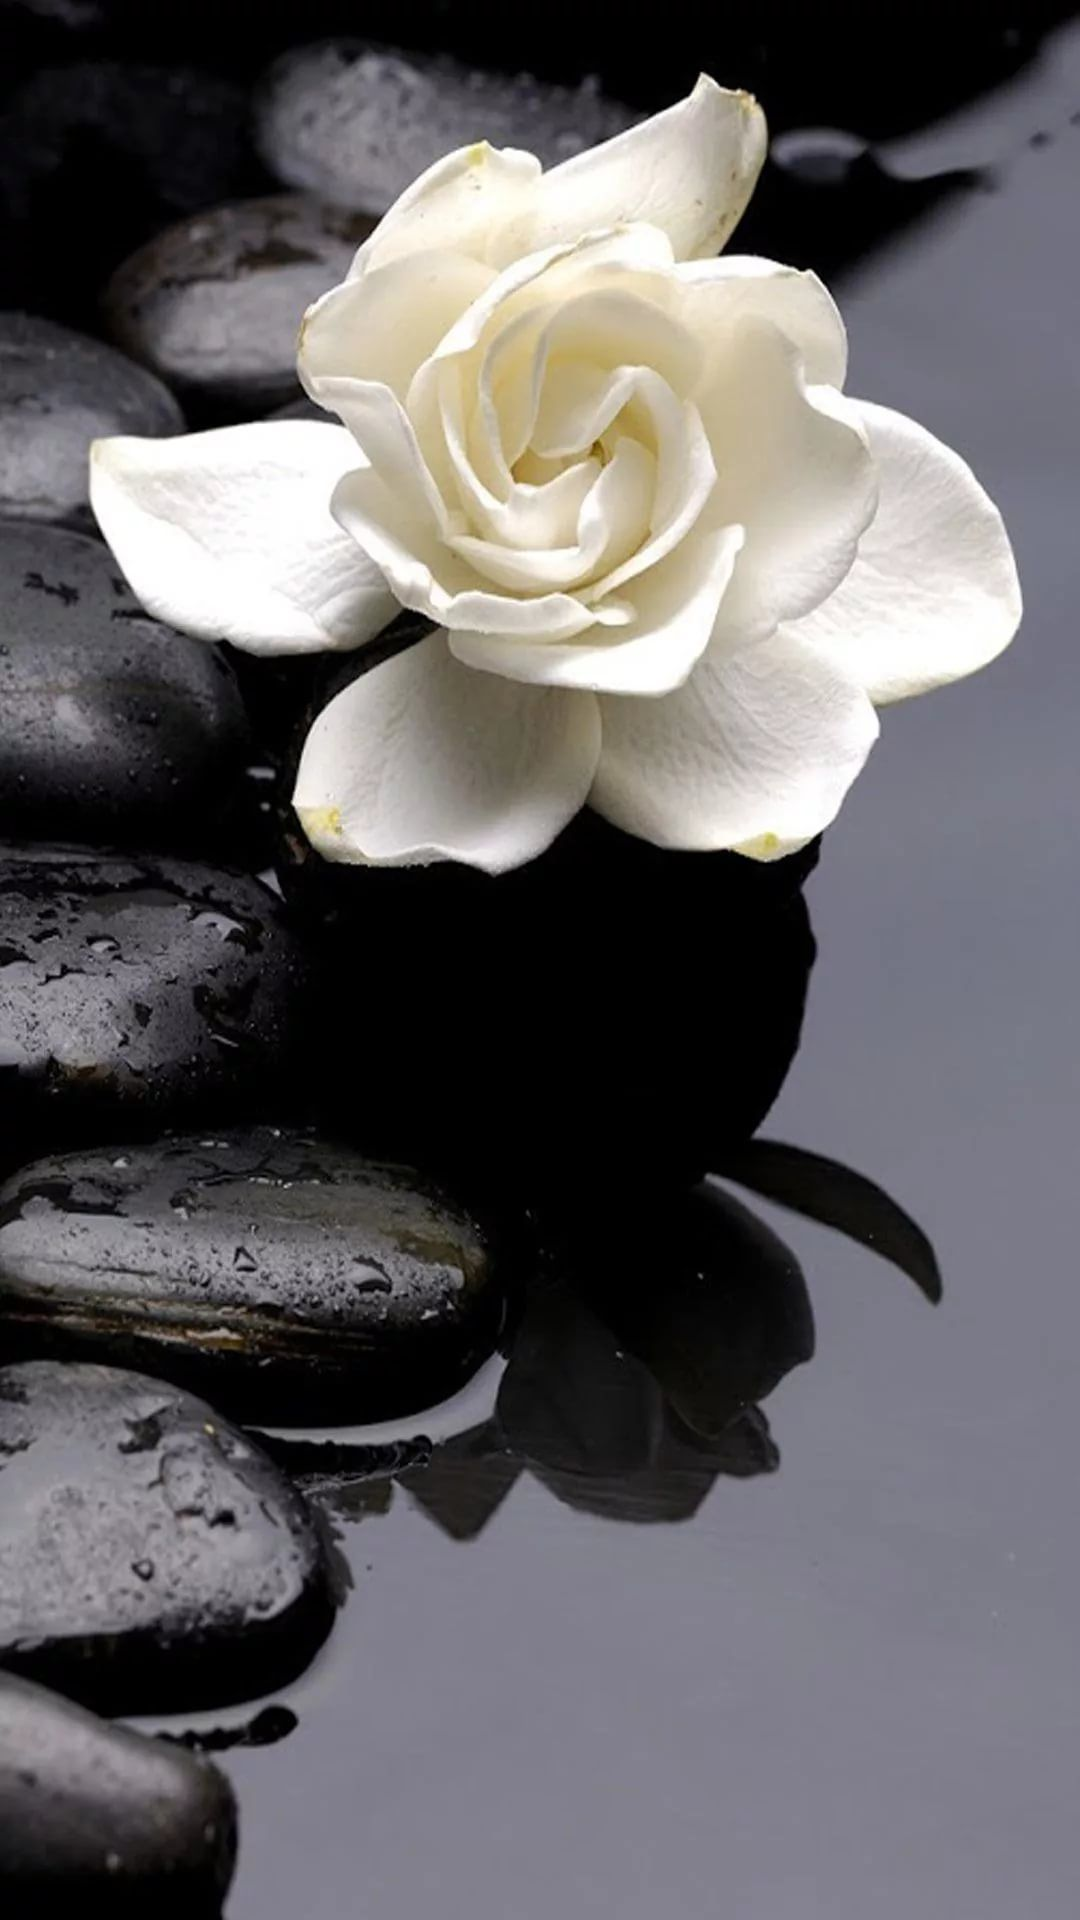 Black And White Flower Iphone Wallpapers 20 Images Wallpaperboat